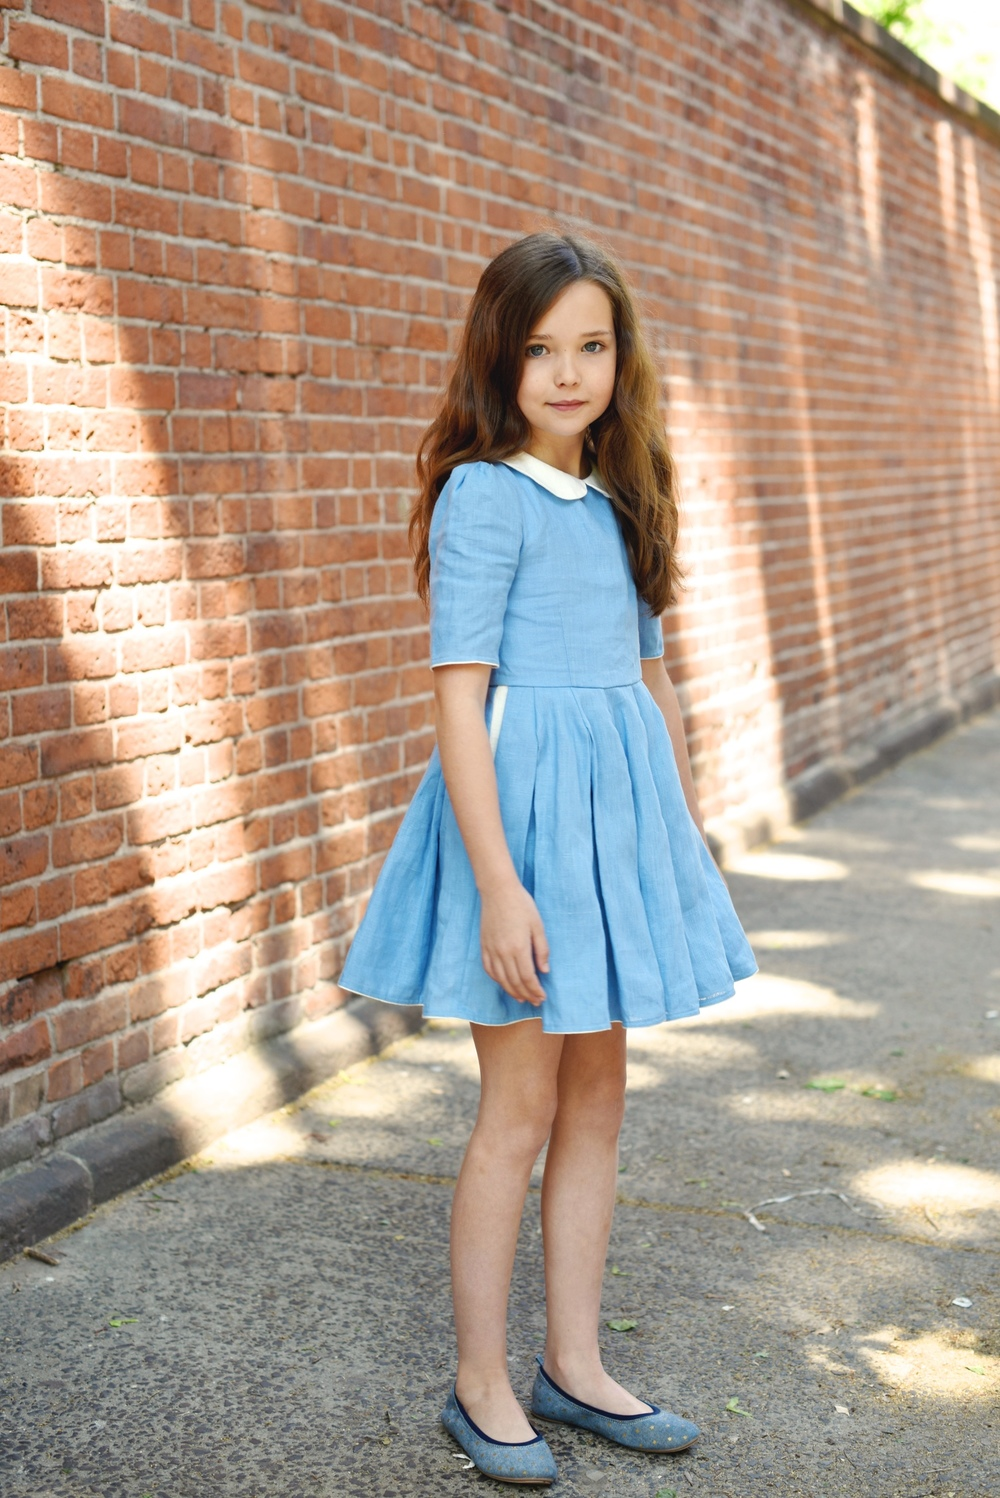 Enfant+Street+Style+by+Gina+Kim+Photography+Paade+Mode+Dress.jpeg